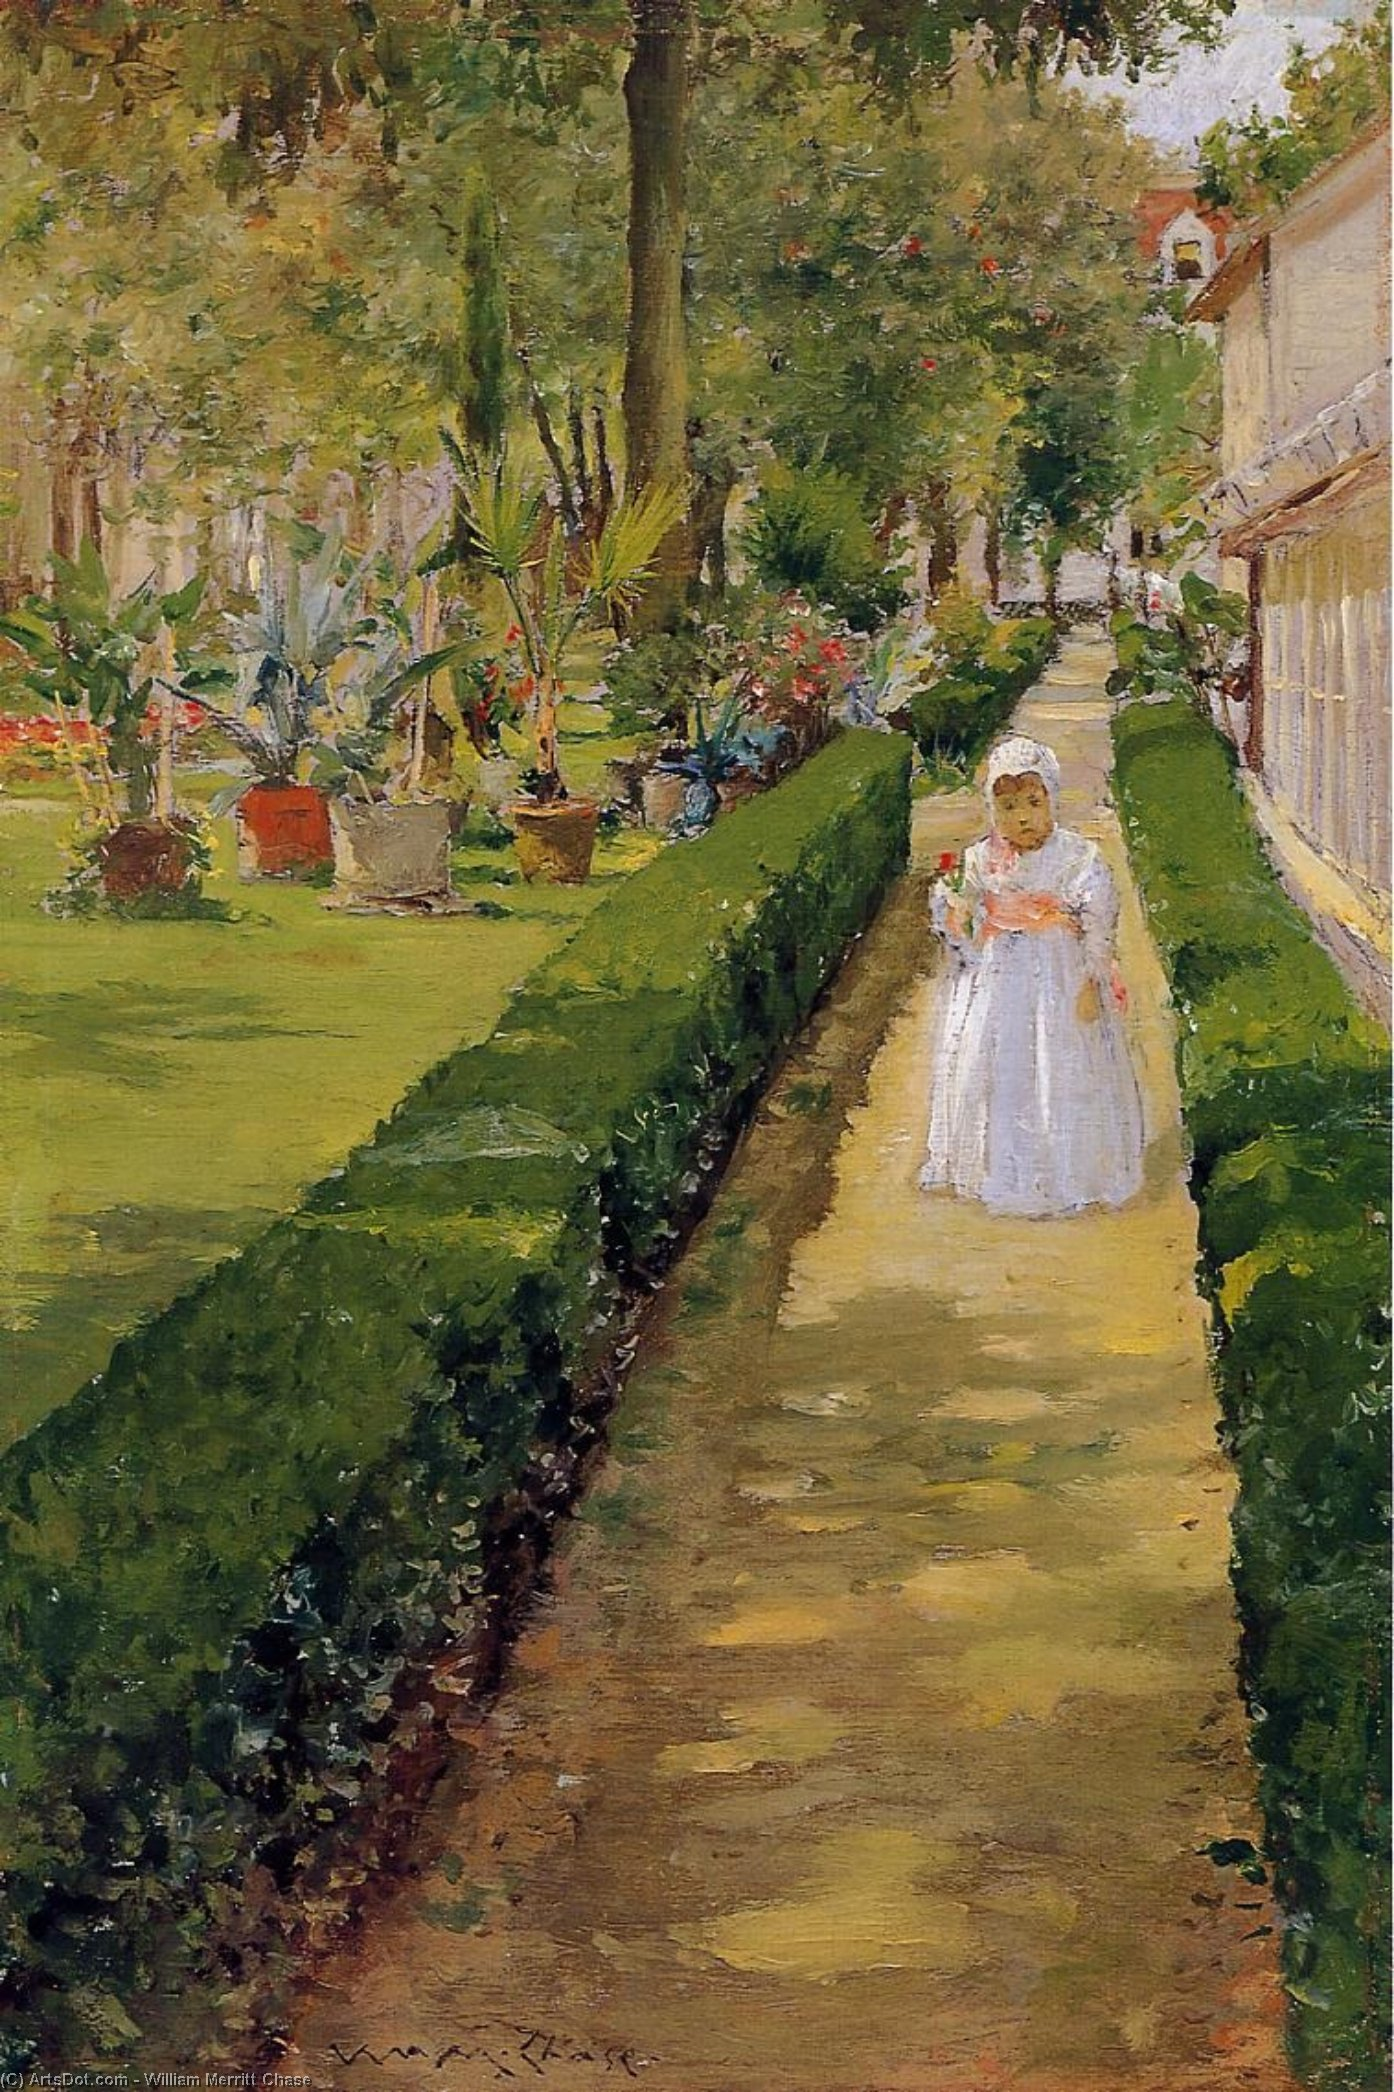 Child on a Garden Walk, Oil On Panel by William Merritt Chase (1849-1916, United States)